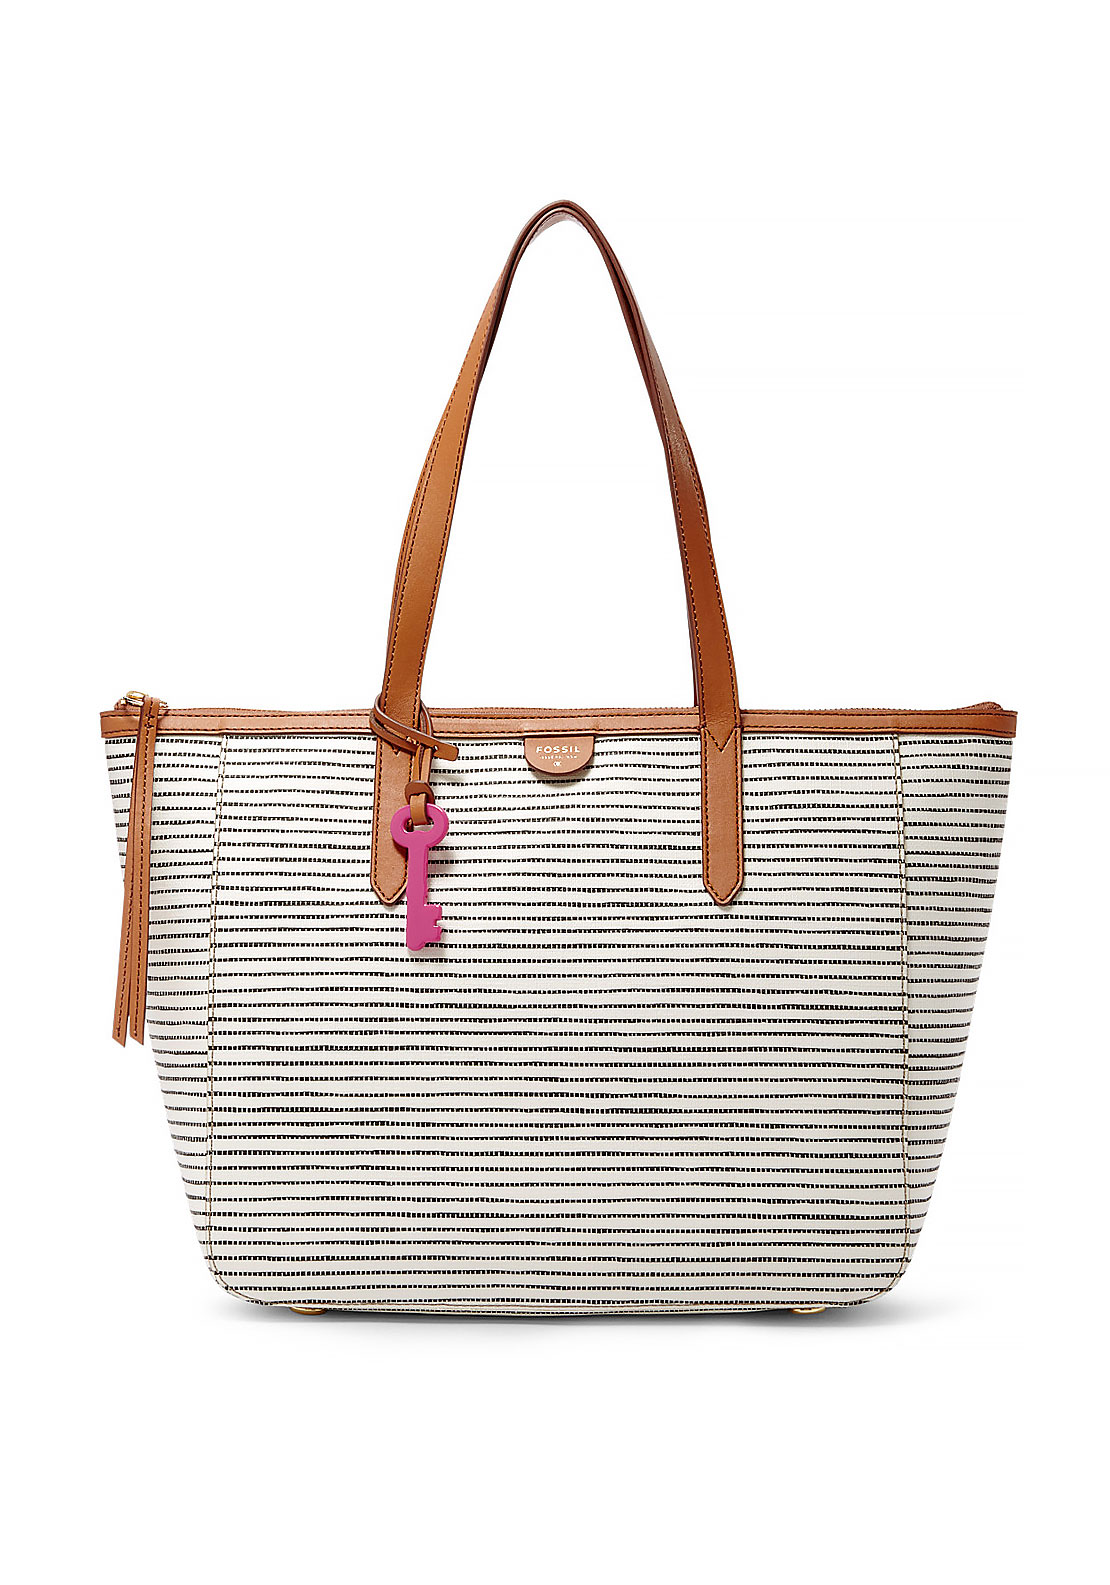 Fossil Sydney Striped Shopper Tote Bag, White and Black